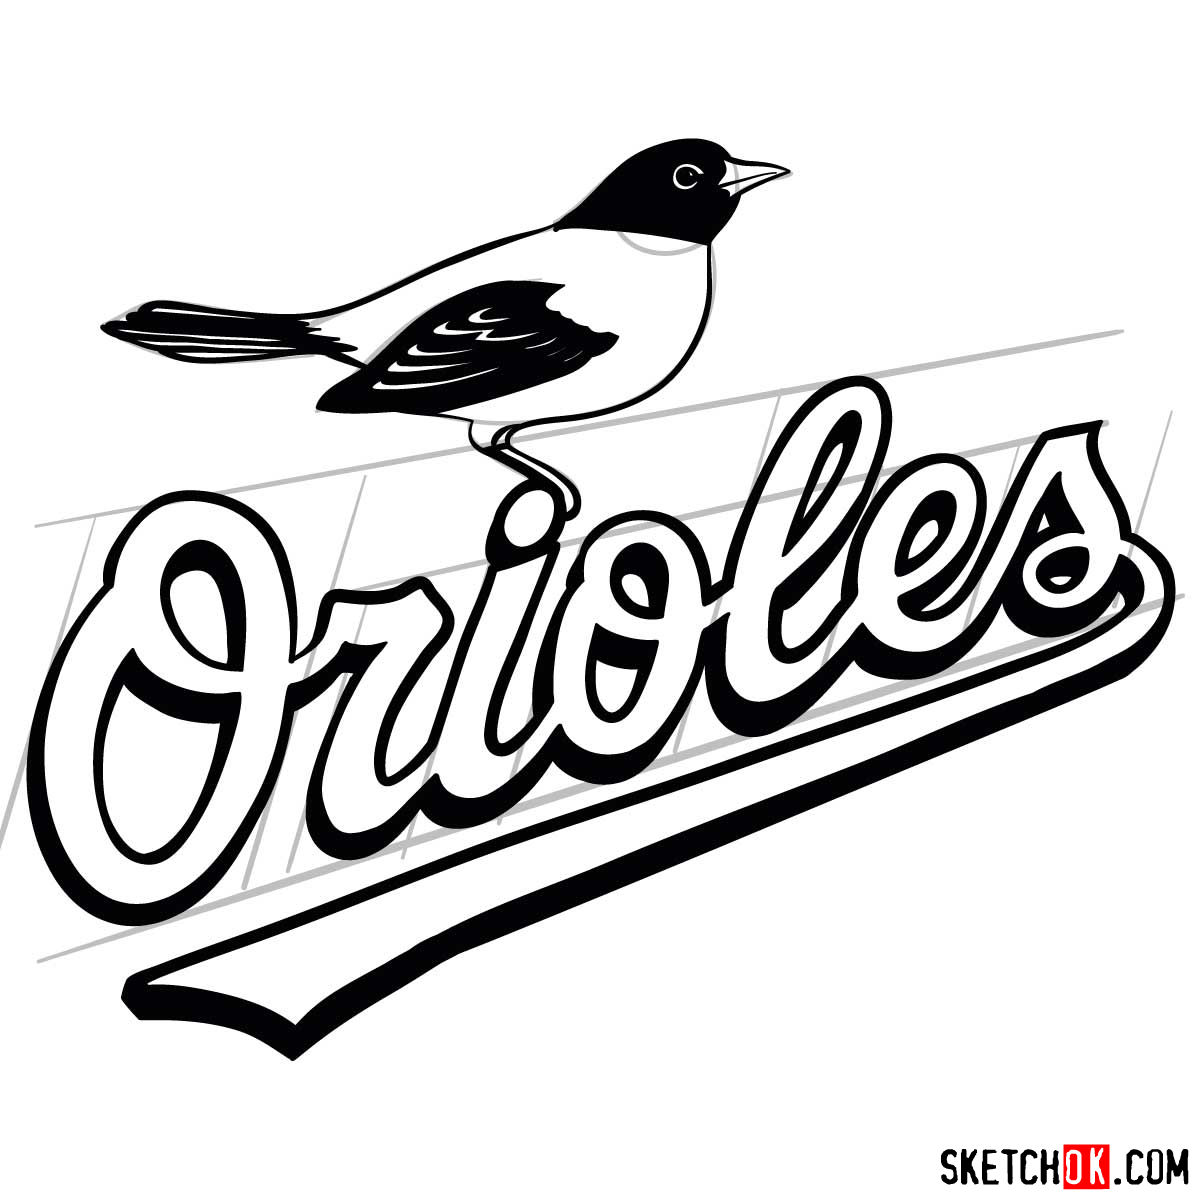 How to draw Baltimore Orioles logo | MLB logos - step 10